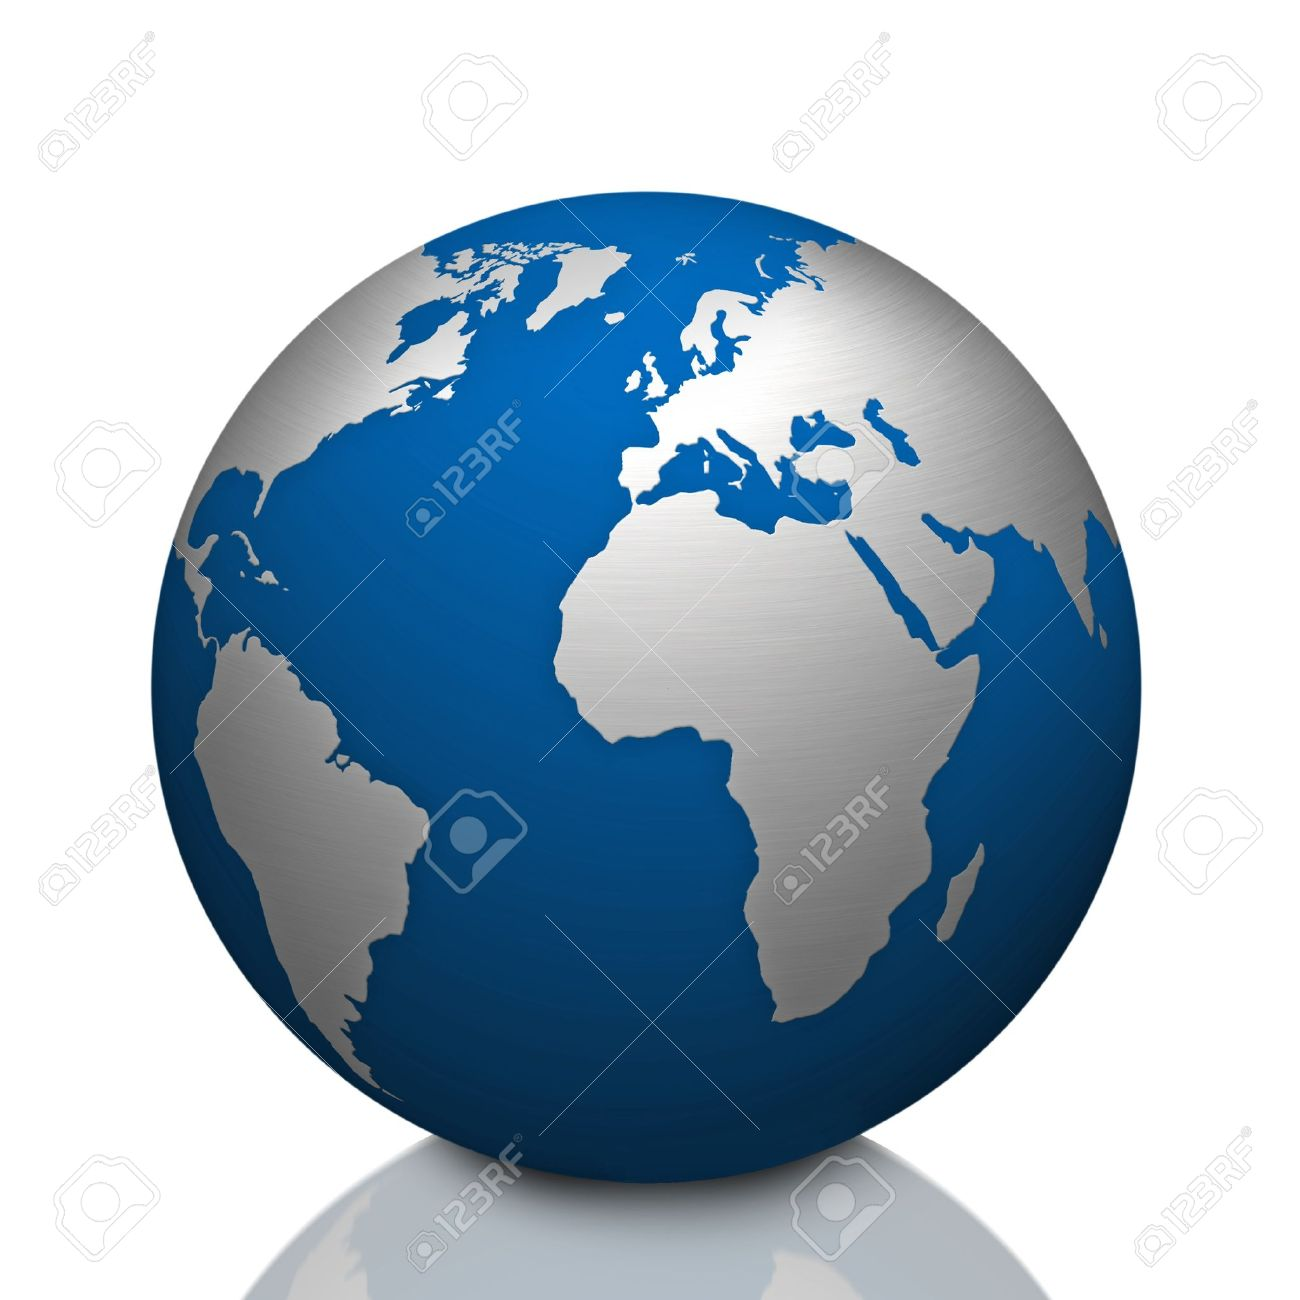 World Globe Map With Stainless Steel Symbol Stock Photo Picture And